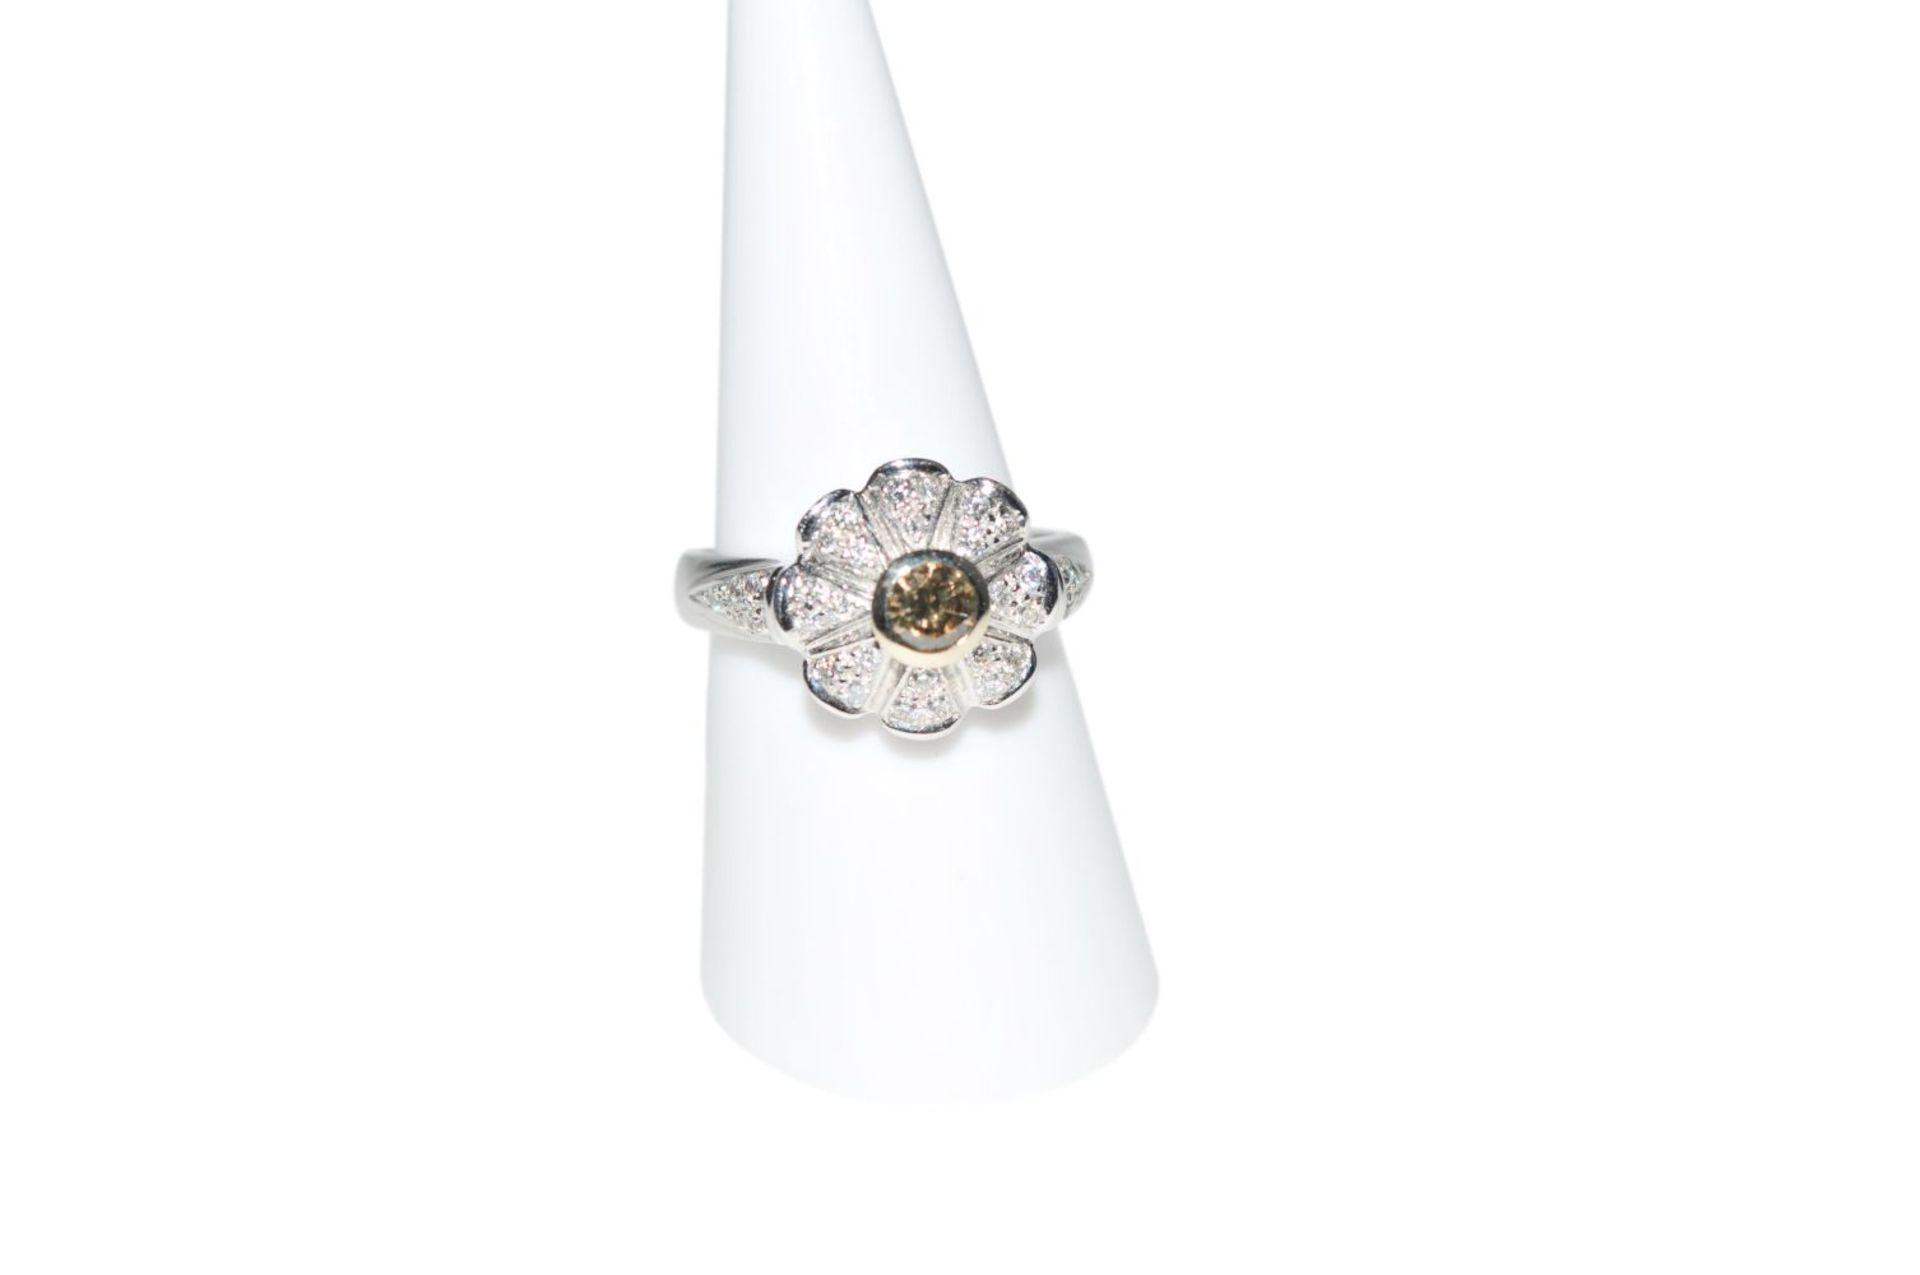 Los 92 - Diamond ring18Kt white gold ring with diamonds total carat weight approx. 0.64ct, total weight 7.